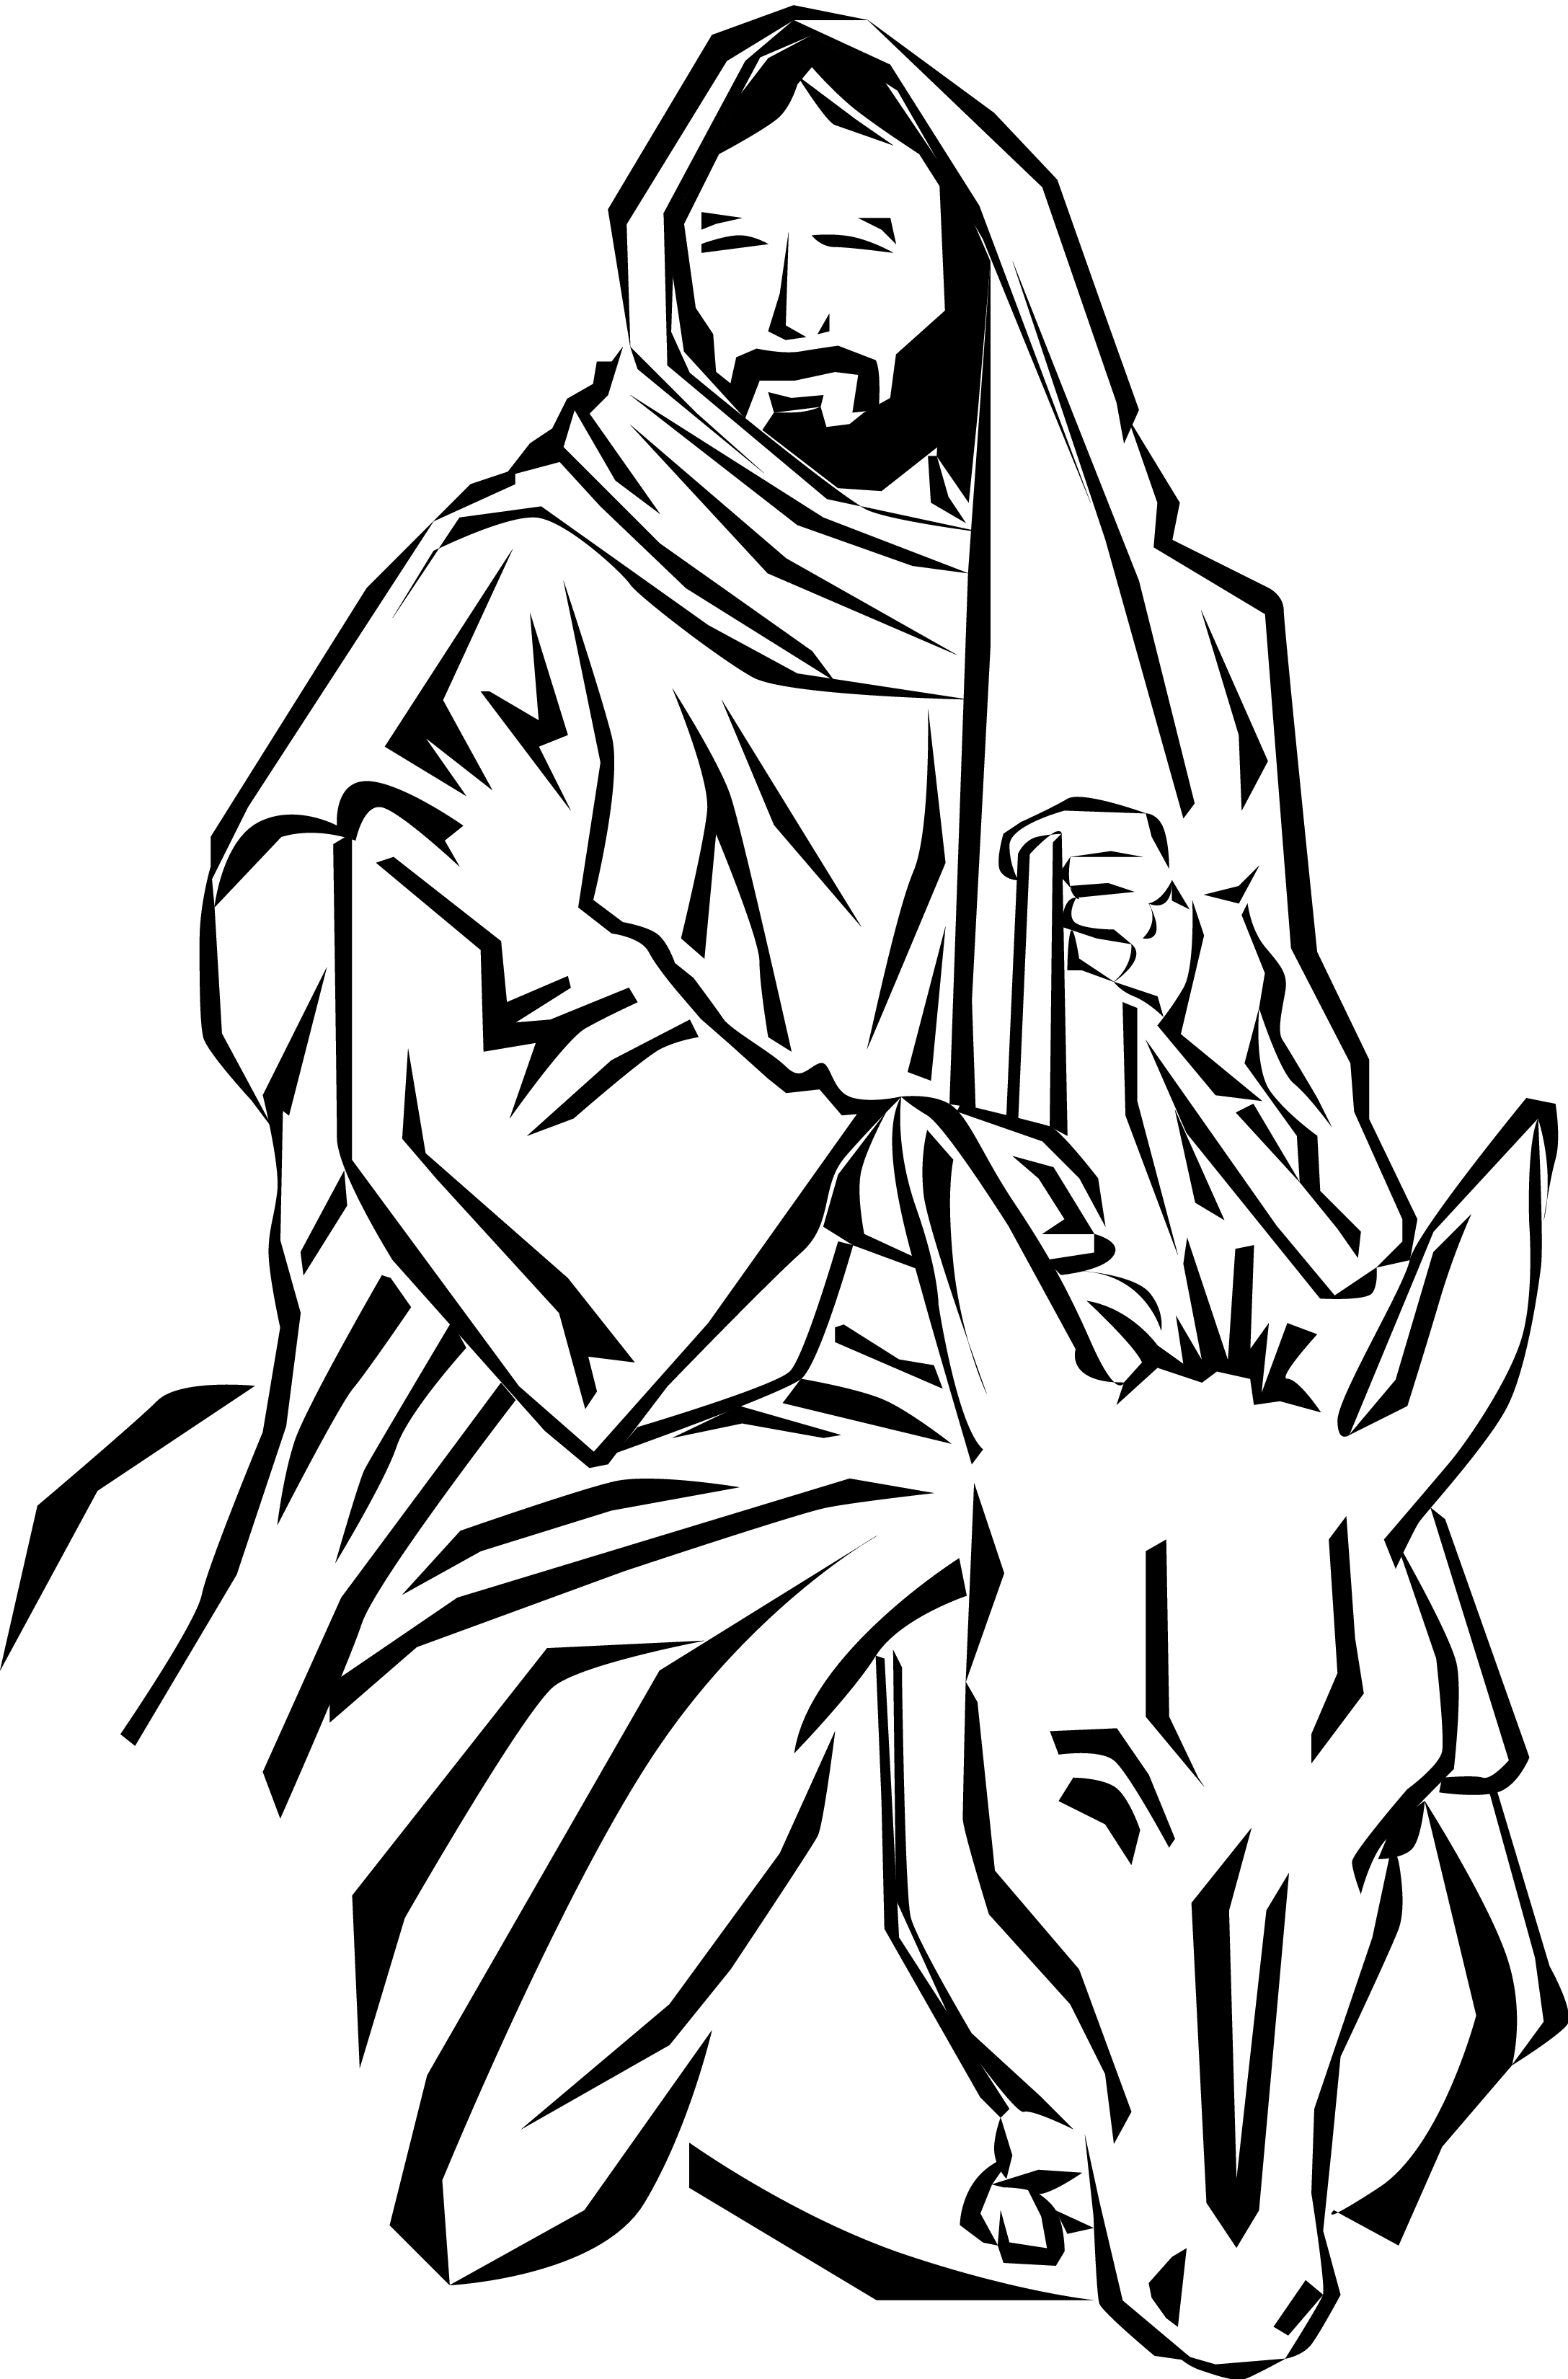 Jesus On Donkey Clip Art.